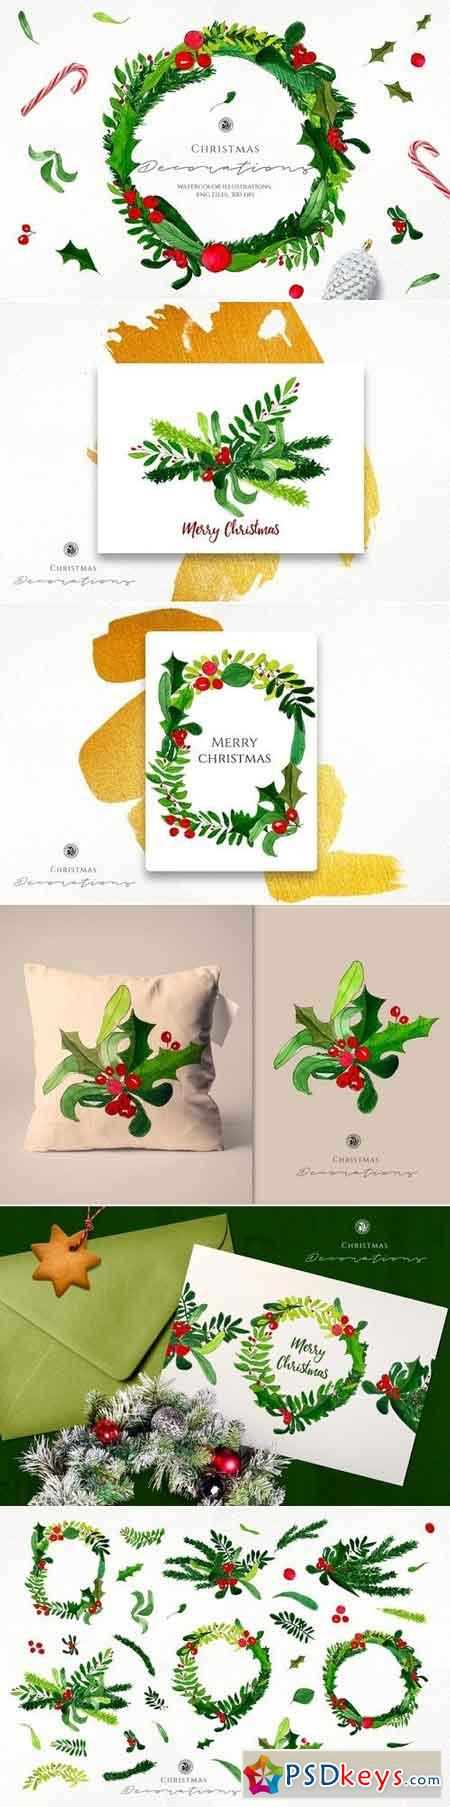 Watercolor Christmas Decorations 3103764